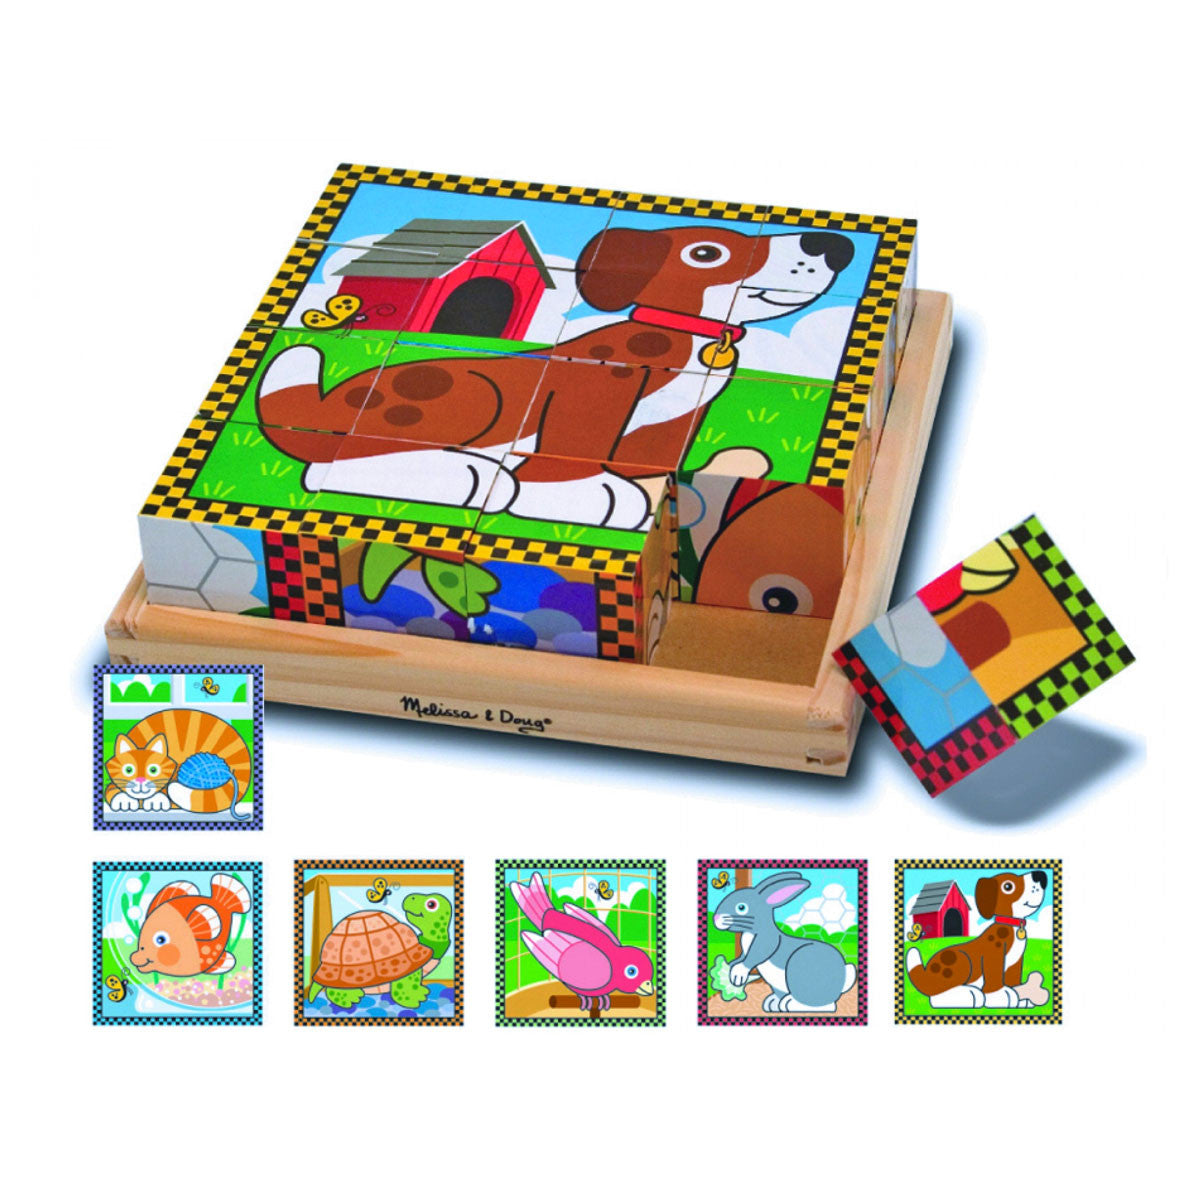 Melissa and Doug Cube Puzzle - 16 Piece  Pets - Melissa and Doug - Little Earth Nest - 2